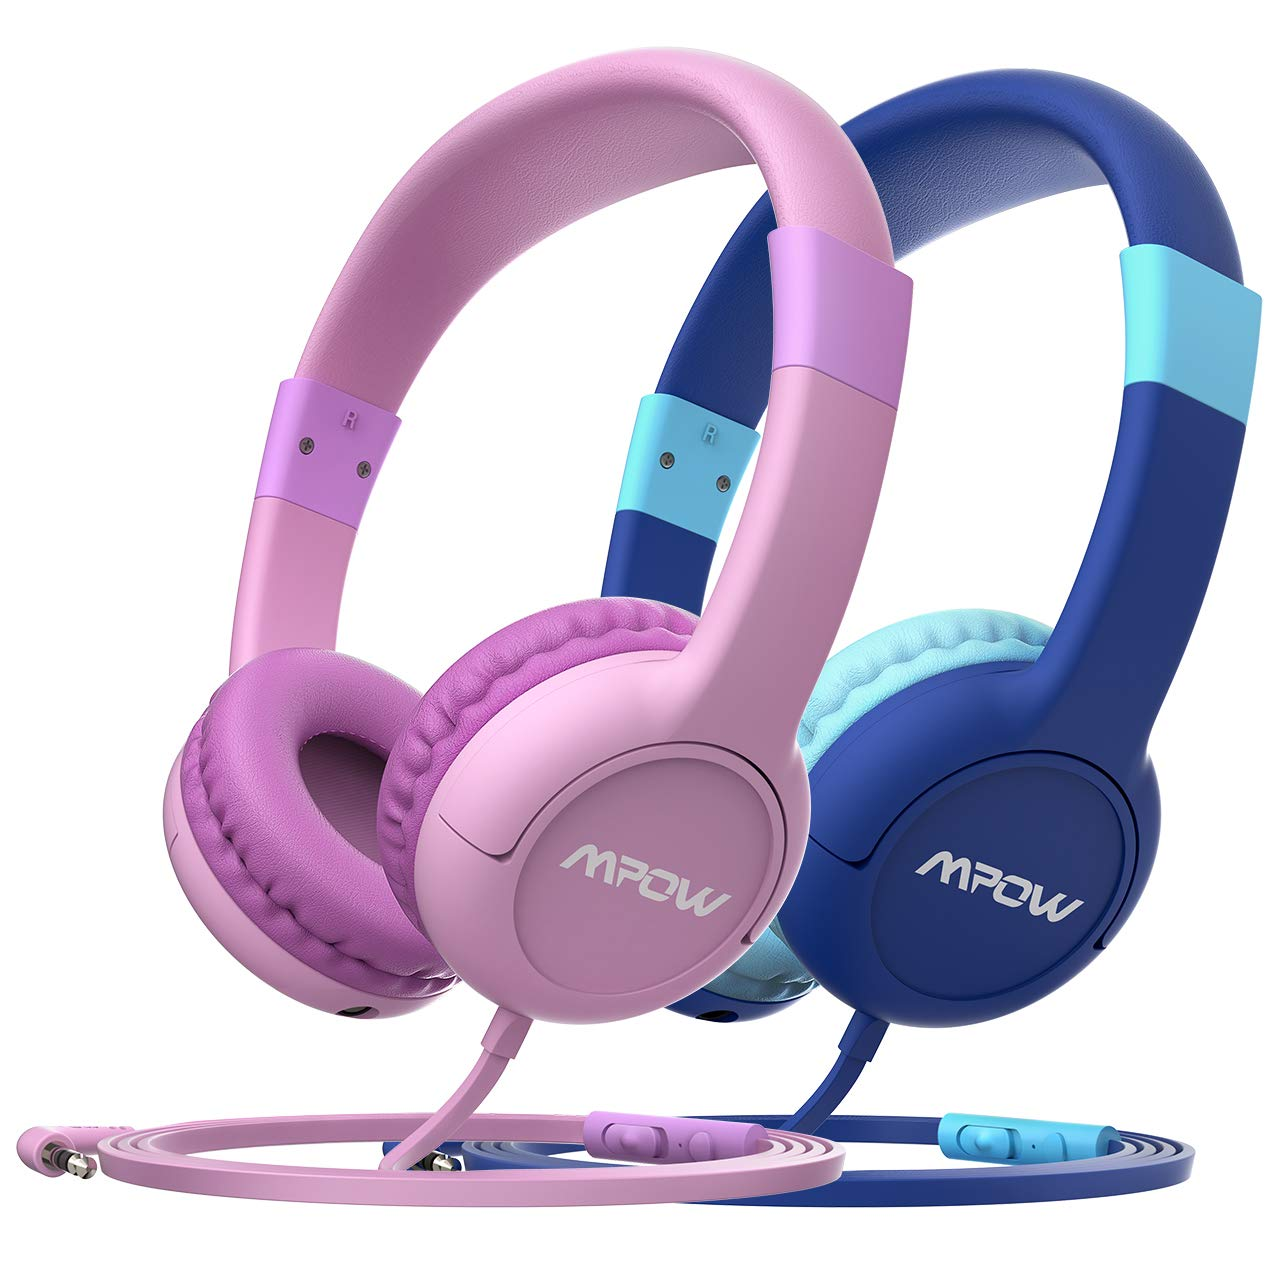 Mpow Wired Kids Headphones, On-Ear Headphones Volume Limiting Wired Headset with SharePort for Children, Fits LeapFrog, Orbo Jr, Galaxy Tab, Dragon Touch Tablets, Smartphones, Laptop, BLUE (2 Pack) Shenzhen Qianhai Patuoxun Network & Technology LTD